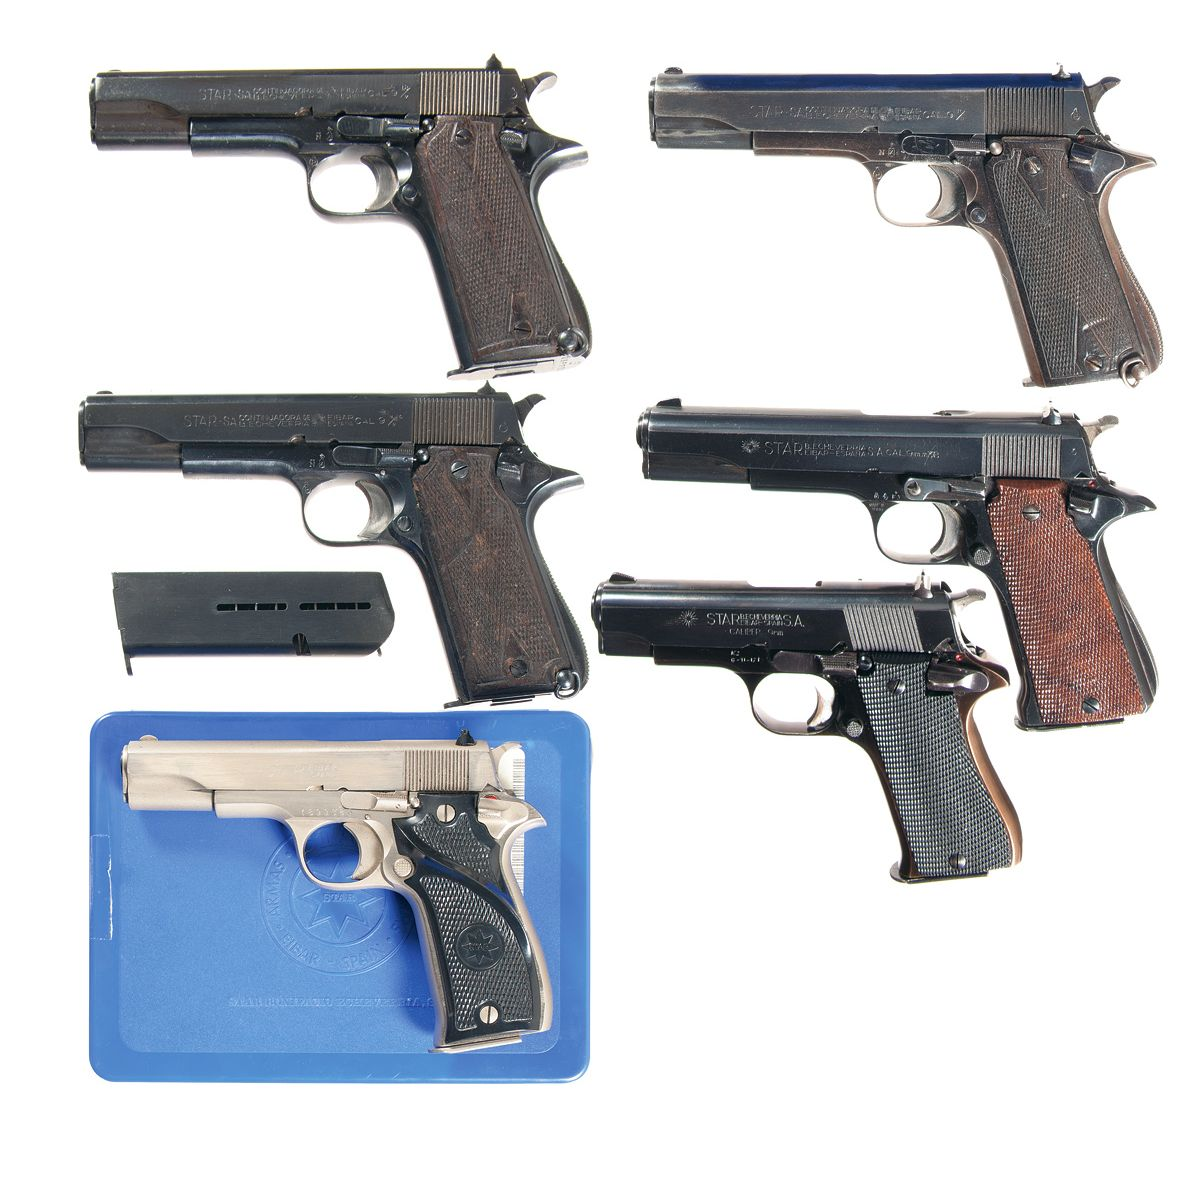 medium resolution of image 1 six star semi automatic pistols a rare nazi proofed star